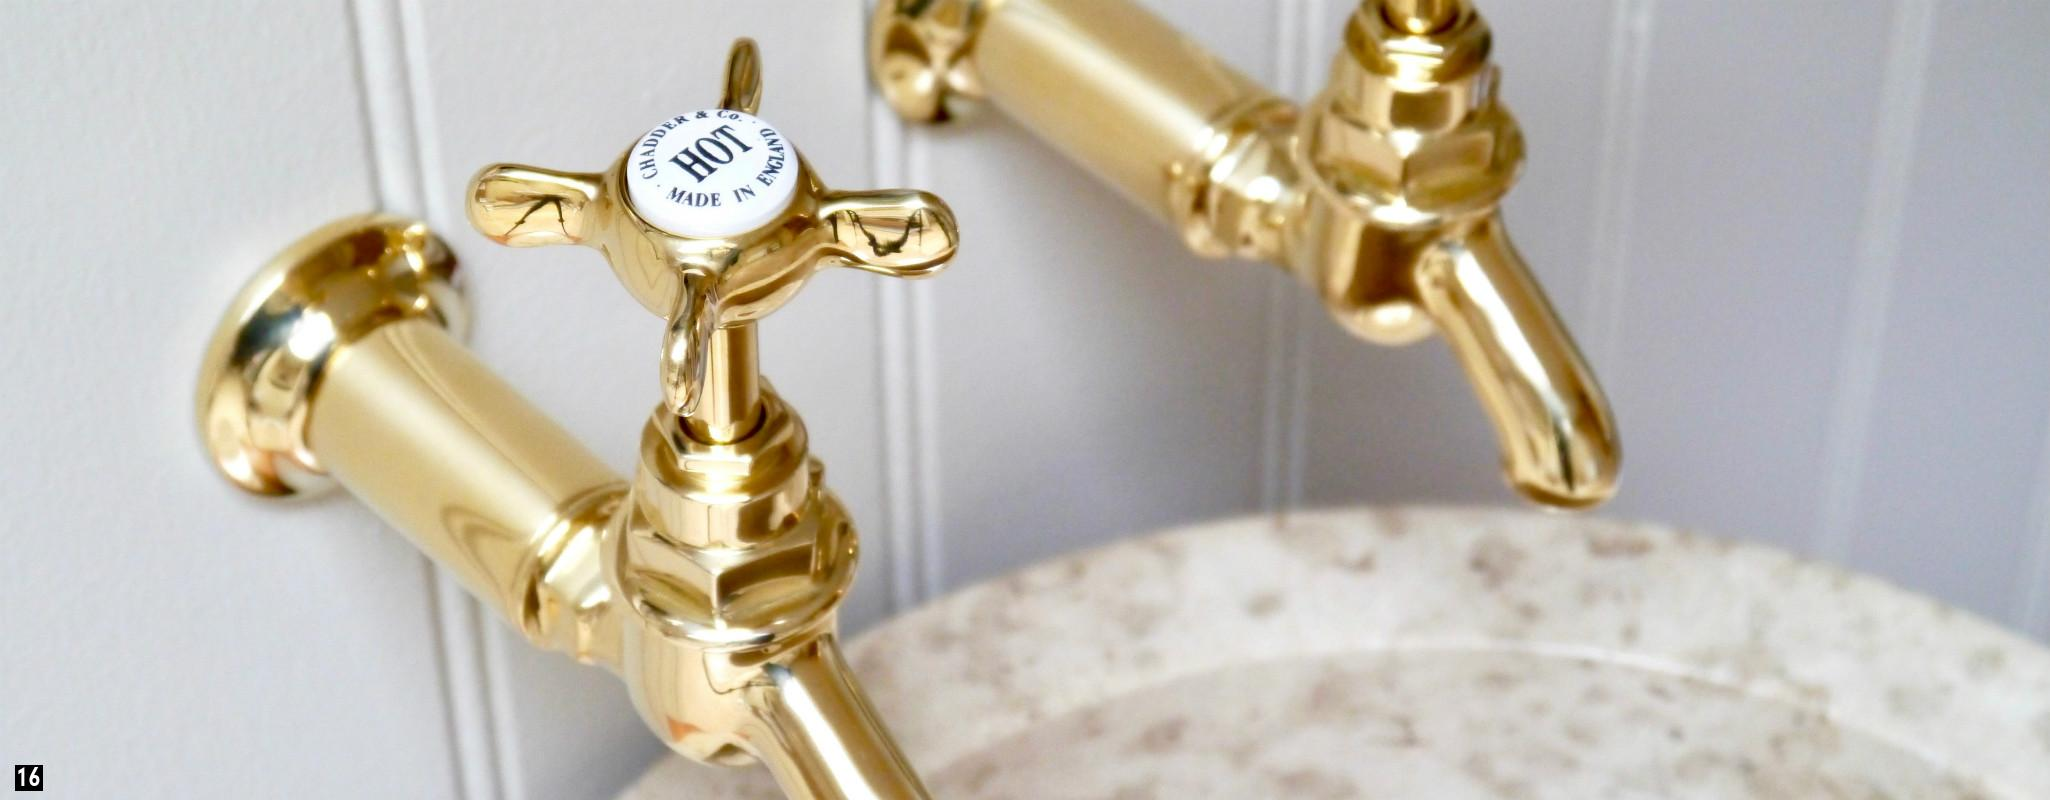 Brass Taps, Brass Kitchen Taps , Brass Bib Taps , Vintage Brass Bath Taps